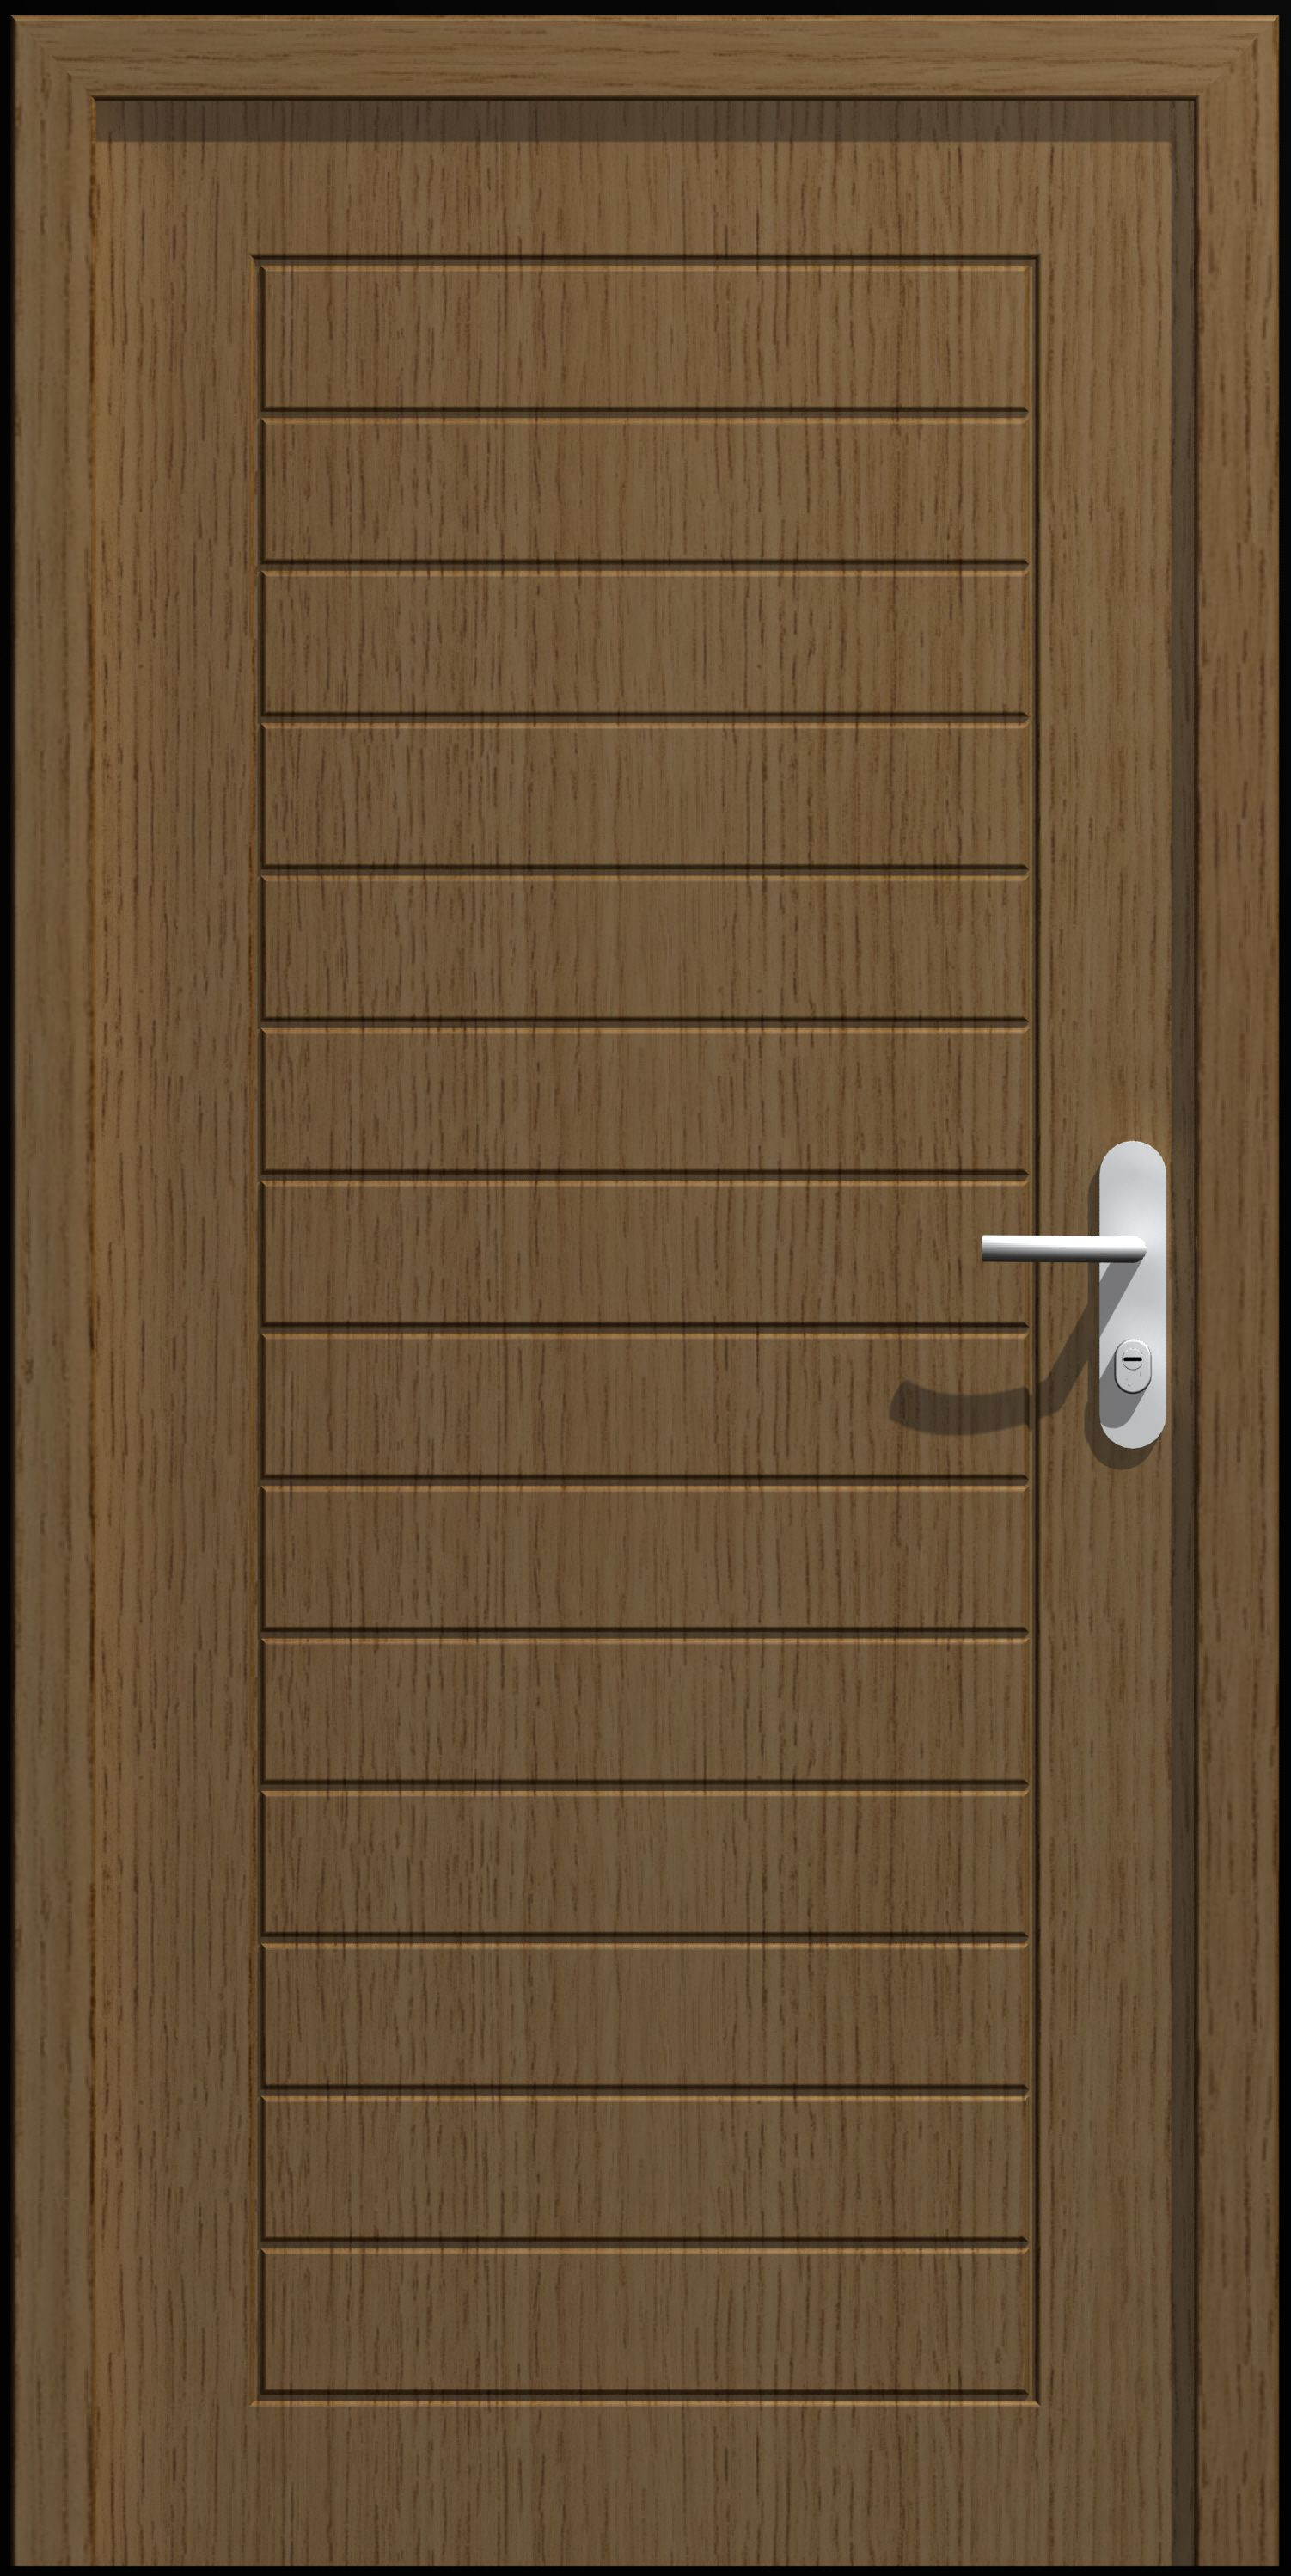 The Dor Nir Door Is Designed With A Simple Free Line Engraved In A Veneer Board The Door Is Based On A Com Wooden Door Entrance Door Design Wood Wooden Doors